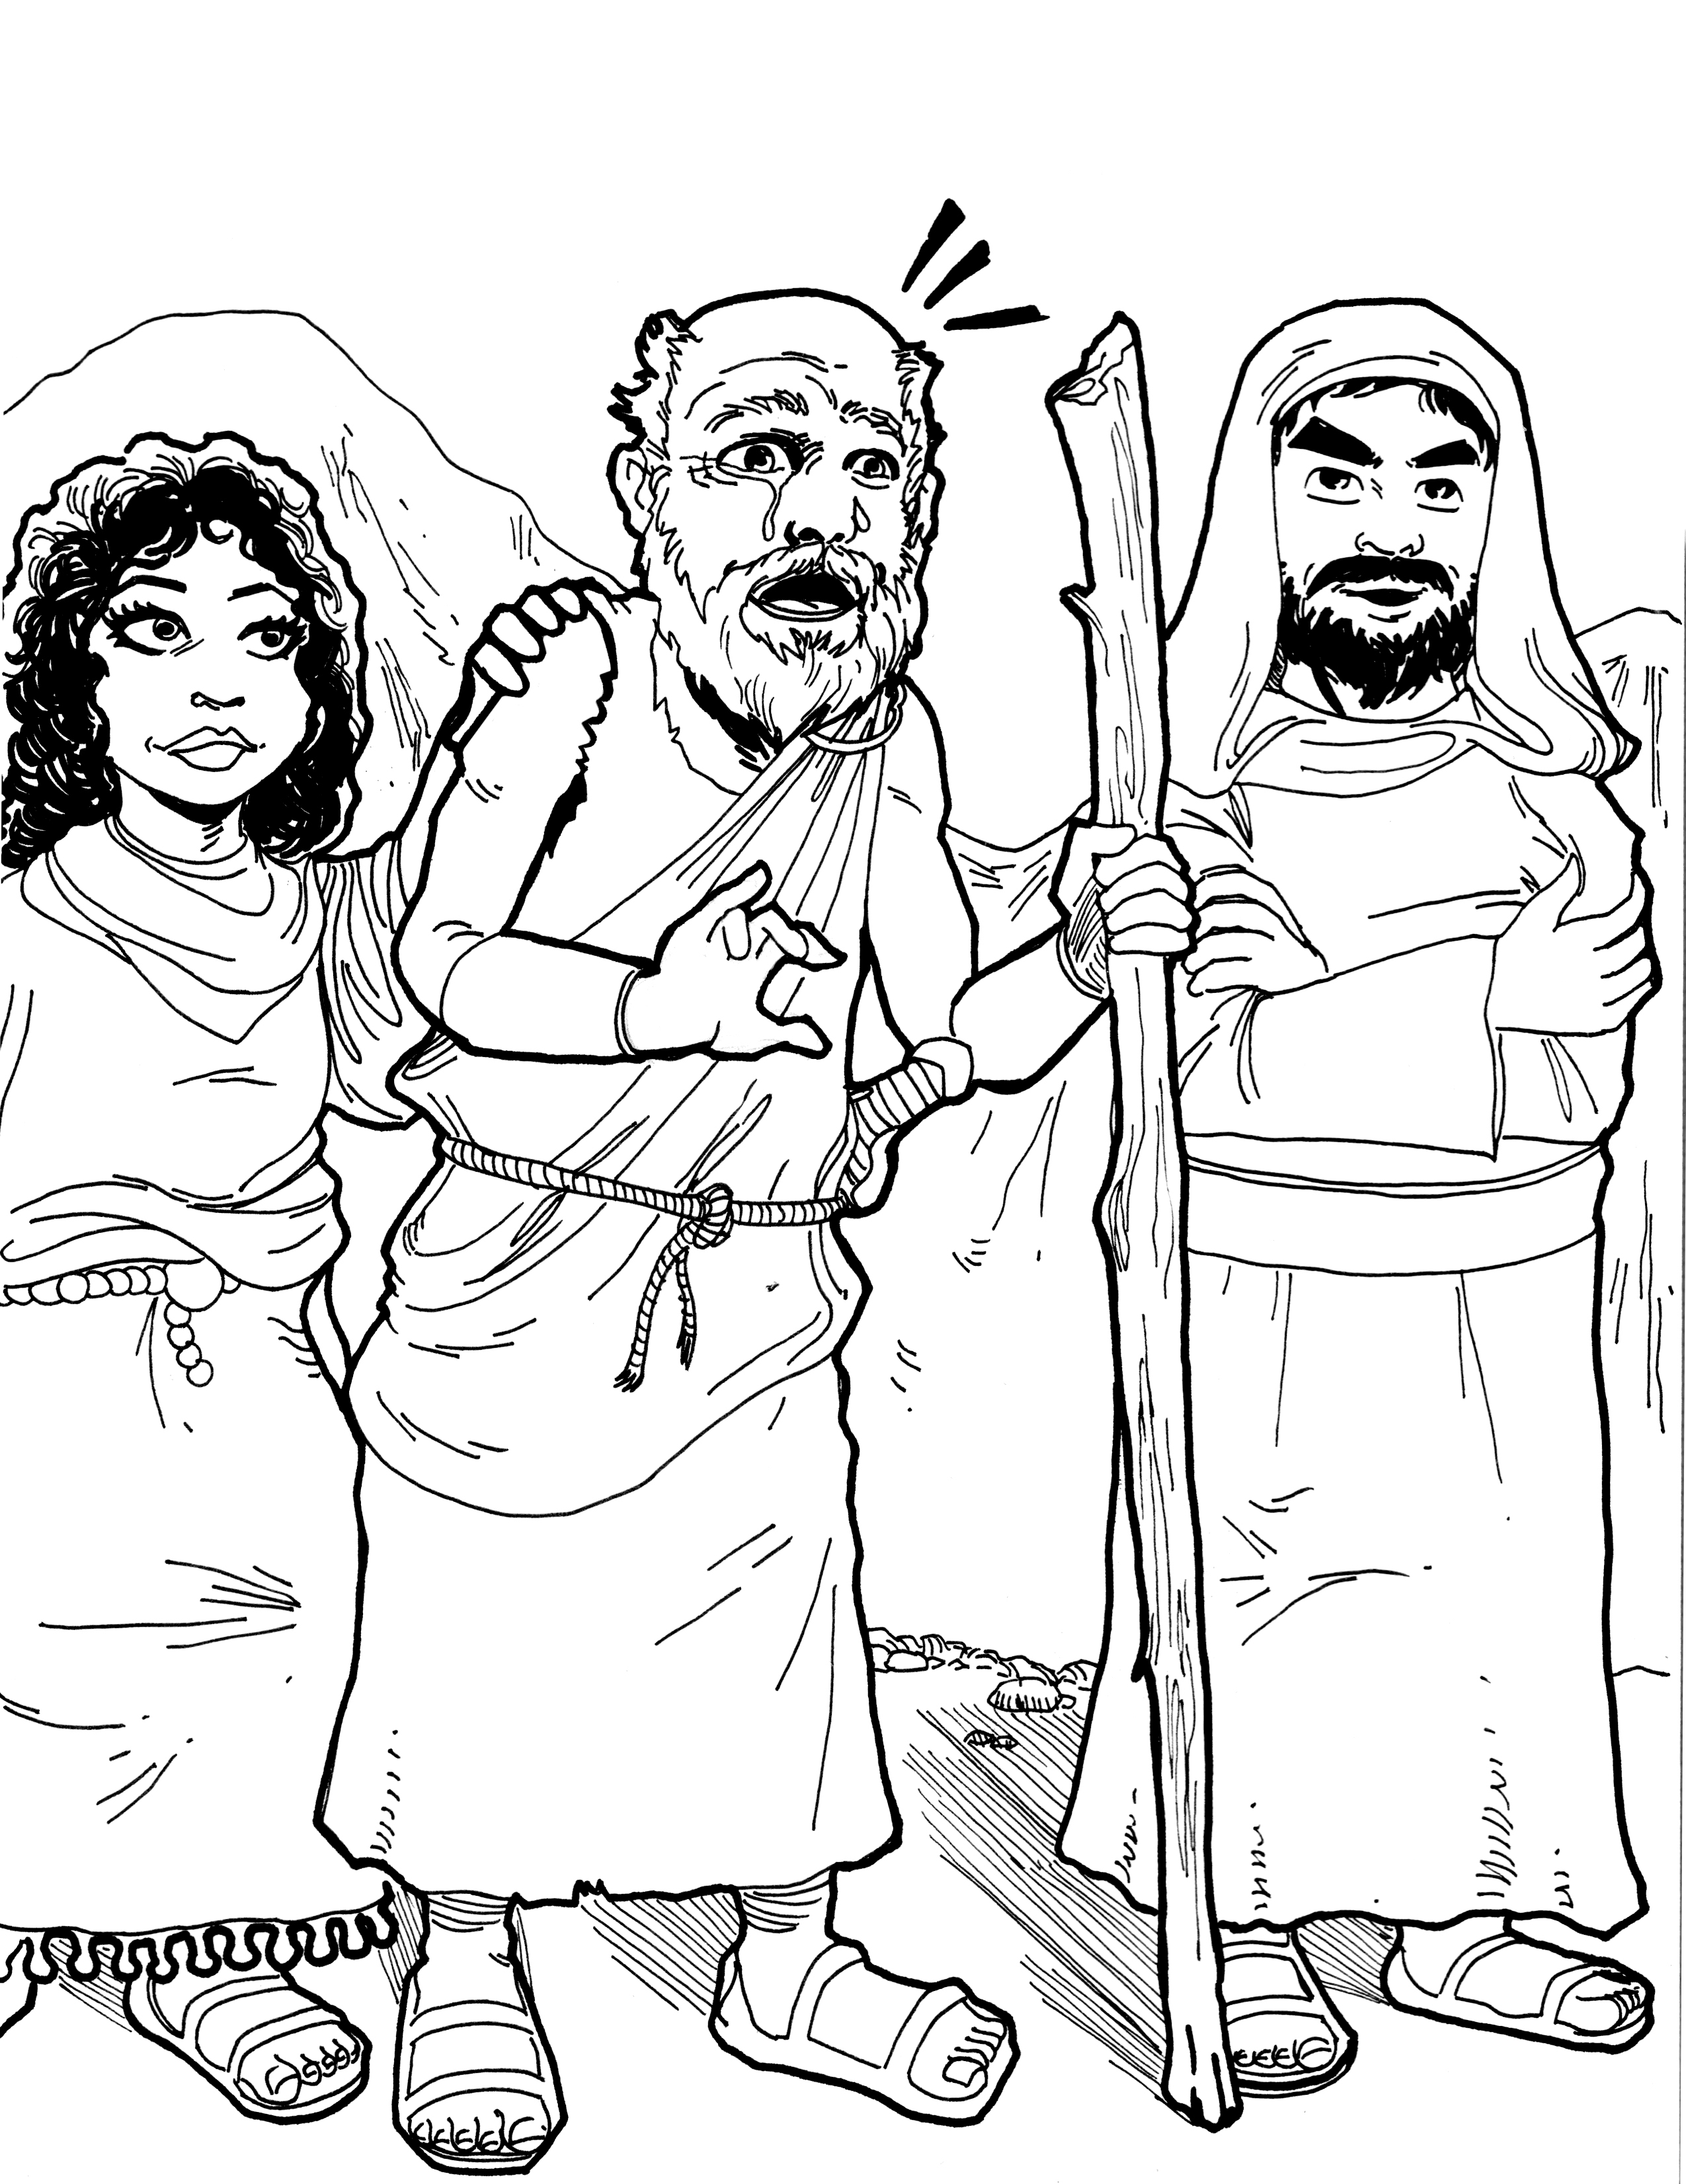 Free coloring pages of apostle paul shipwrecked